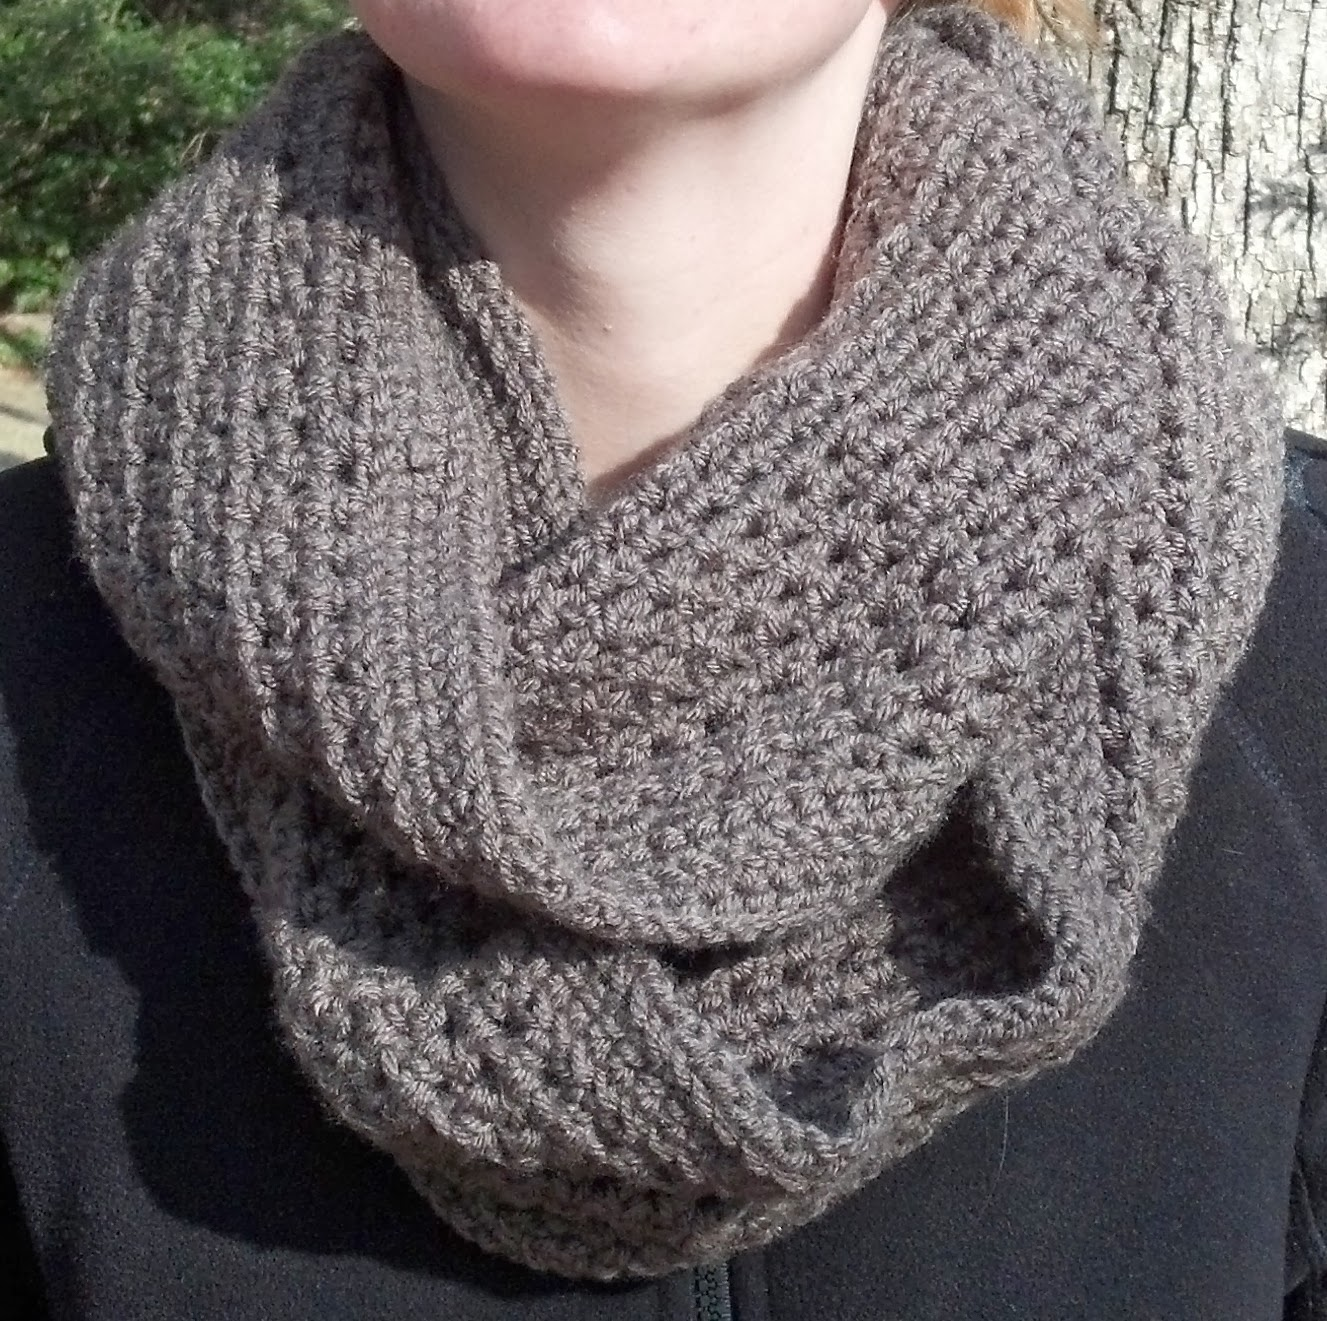 Capelet Knitting Pattern Free : This cozy infinity scarf is really easy to make and has a nice border to edge...